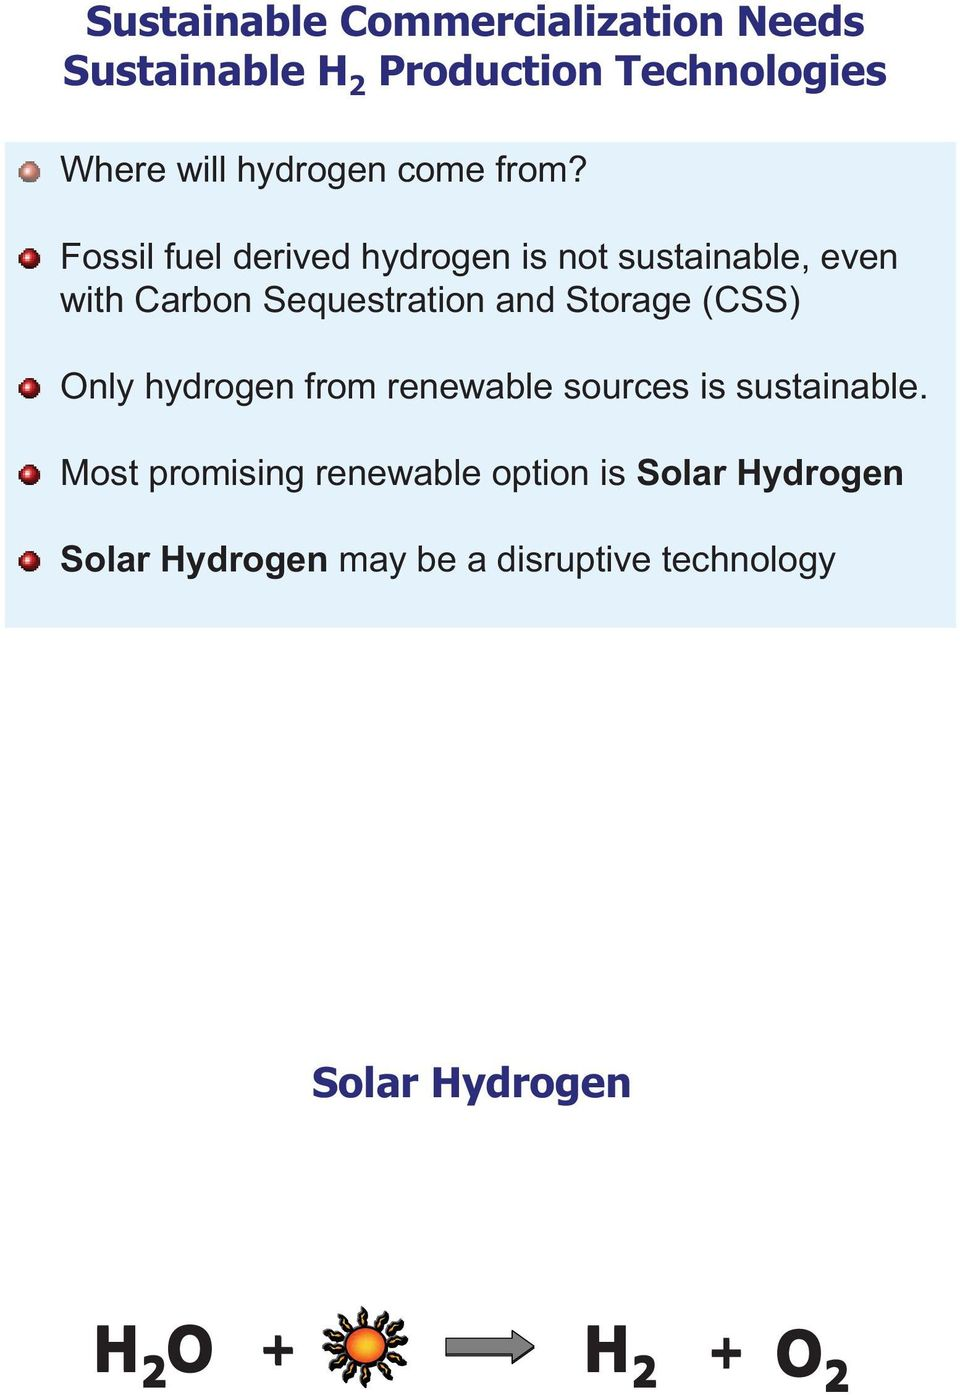 Fossil fuel derived hydrogen is not sustainable, even with Carbon Sequestration and Storage (CSS)